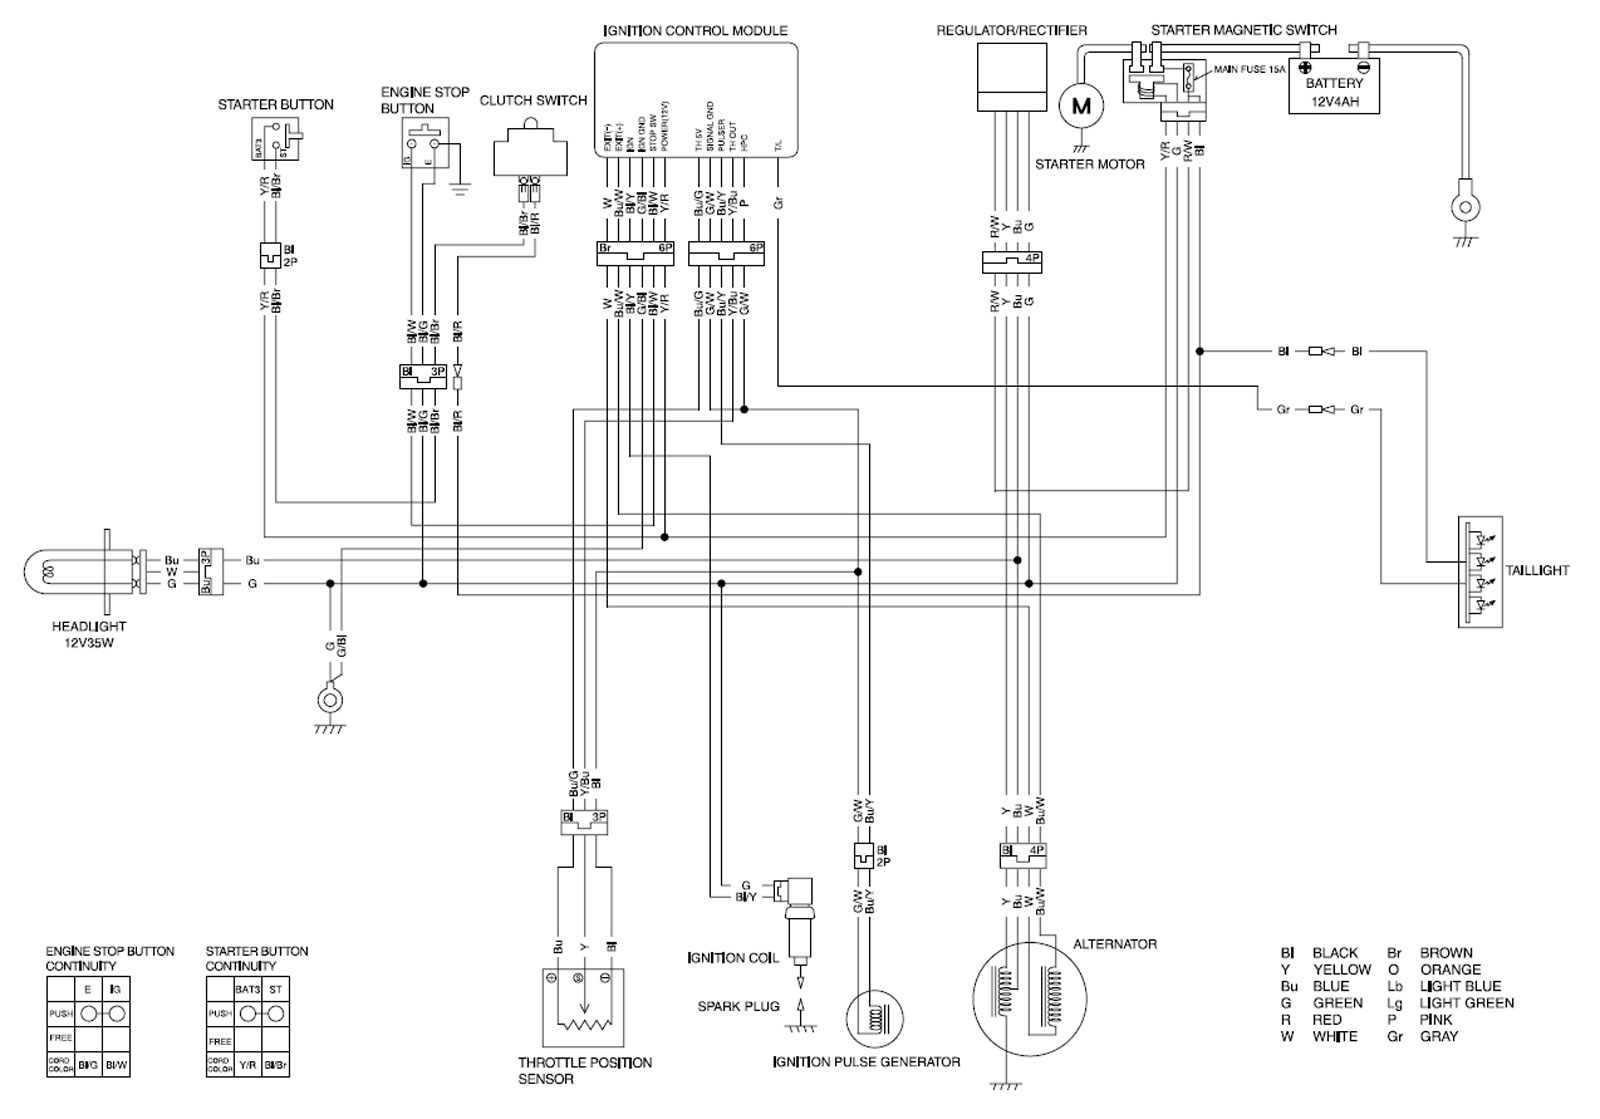 honda 250x wiring diagram on honda download wirning diagrams 2010 honda civic radio wiring diagram at edmiracle.co